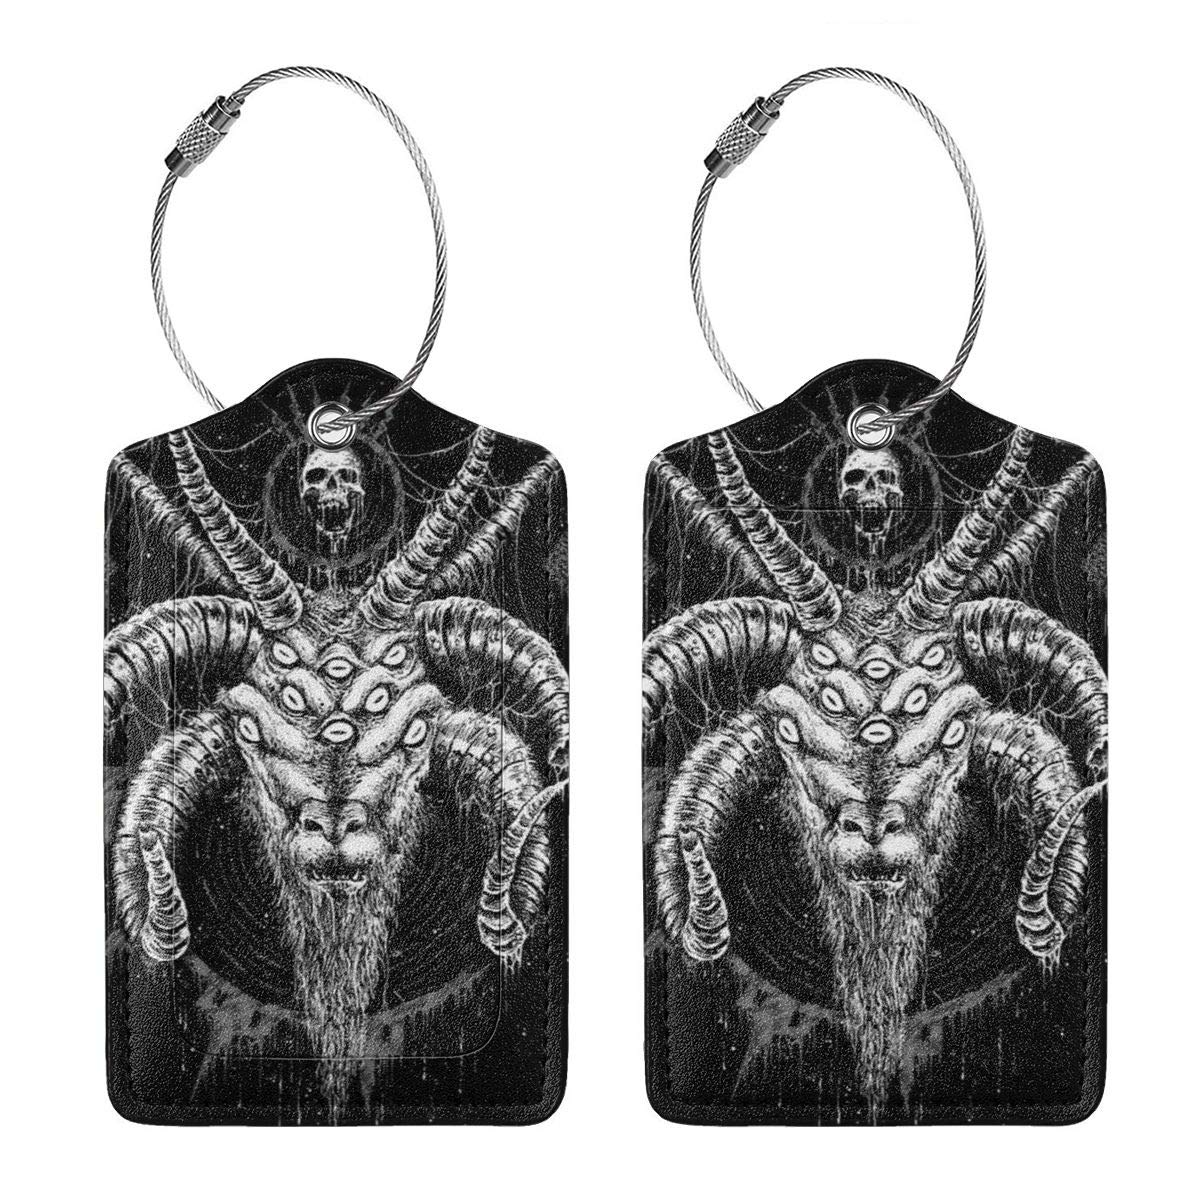 GoldK Baphomet Satan Goat Leather Luggage Tags Baggage Bag Instrument Tag Travel Labels Accessories with Privacy Cover